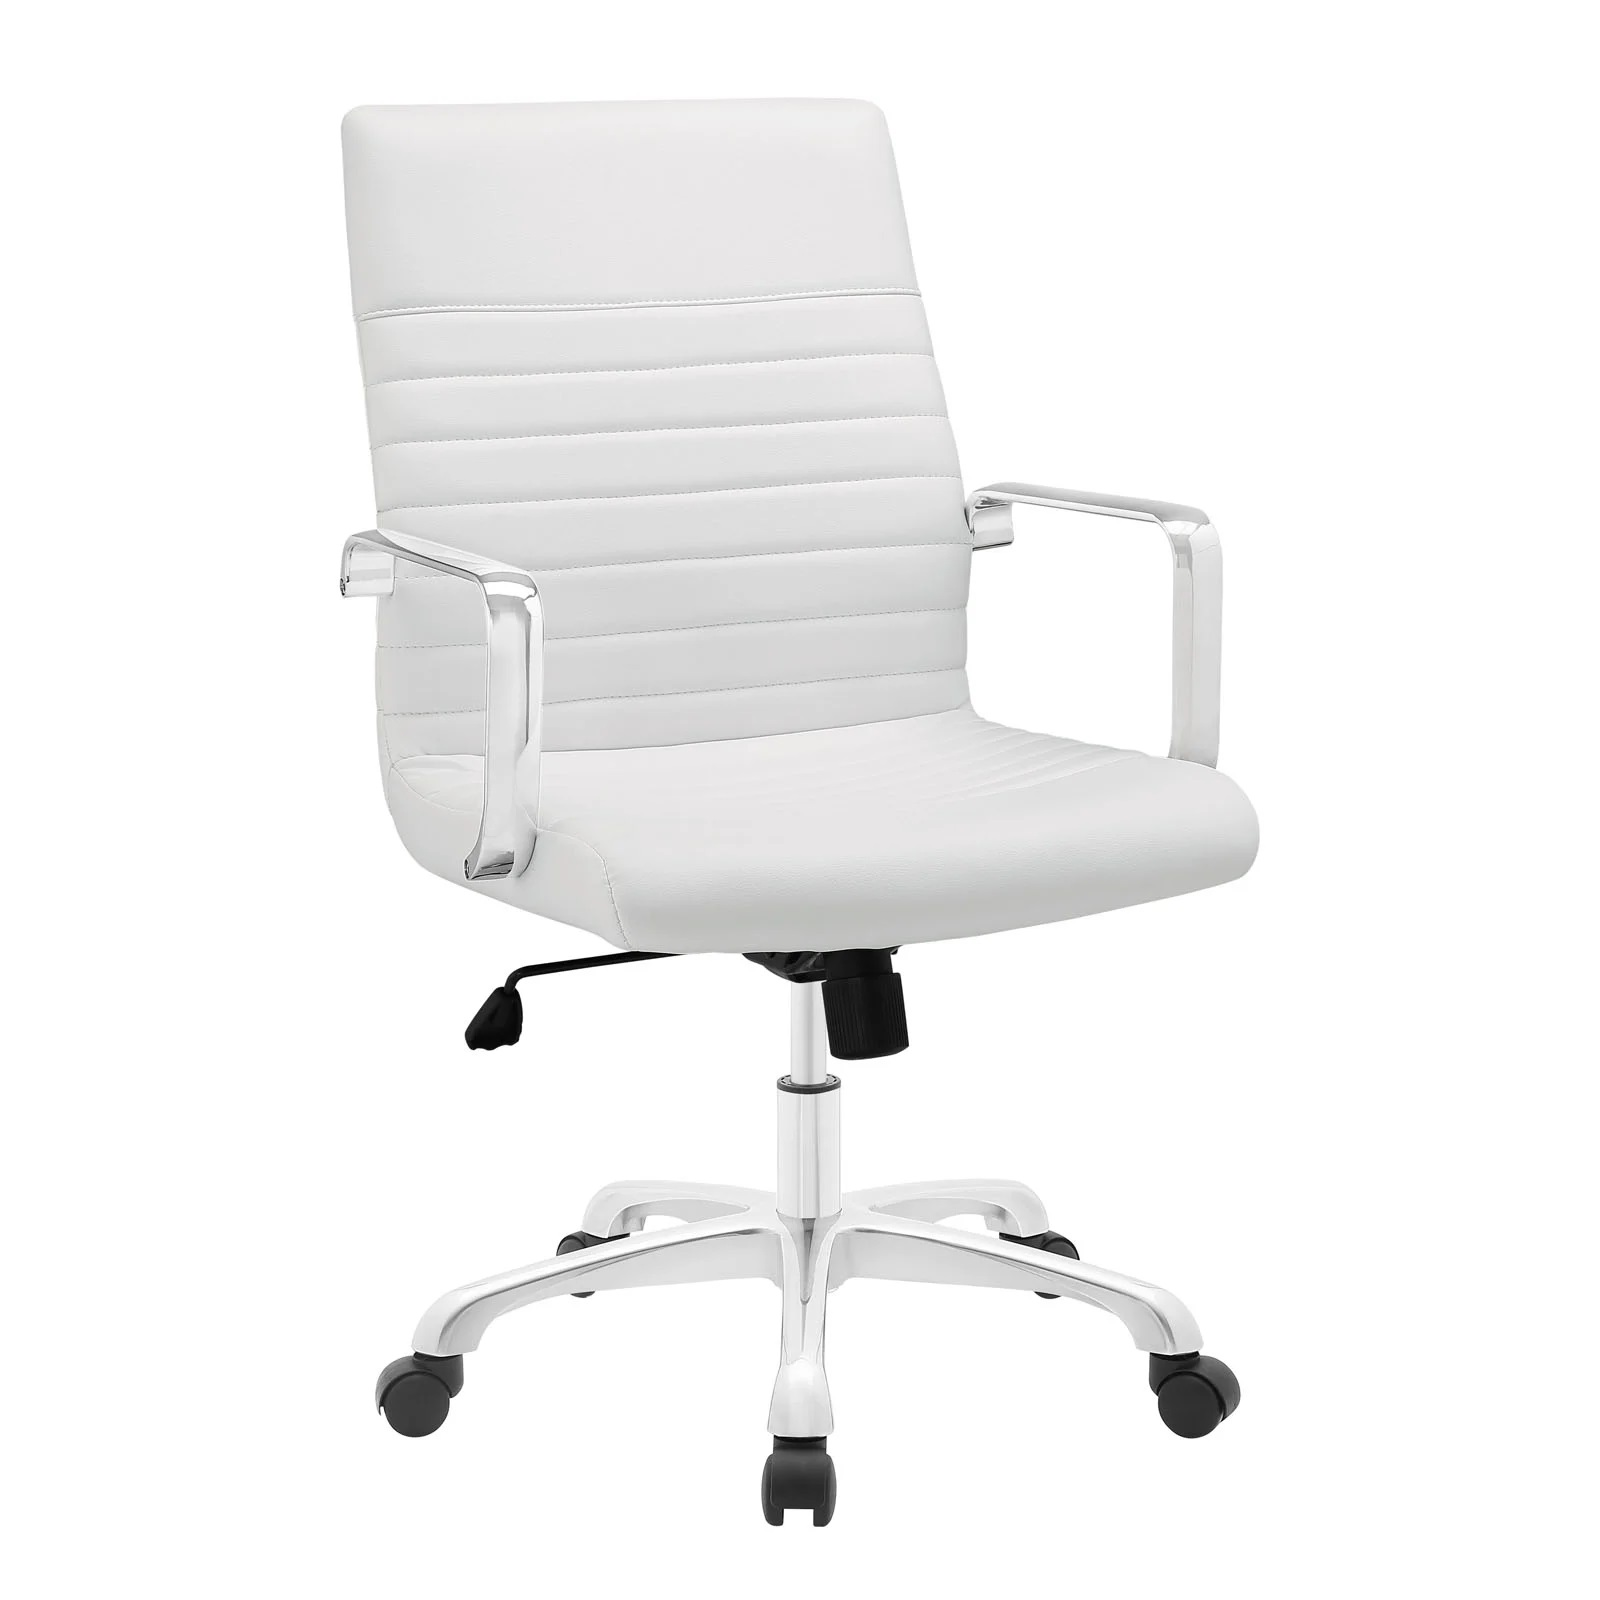 Mid Back Office Chair in White